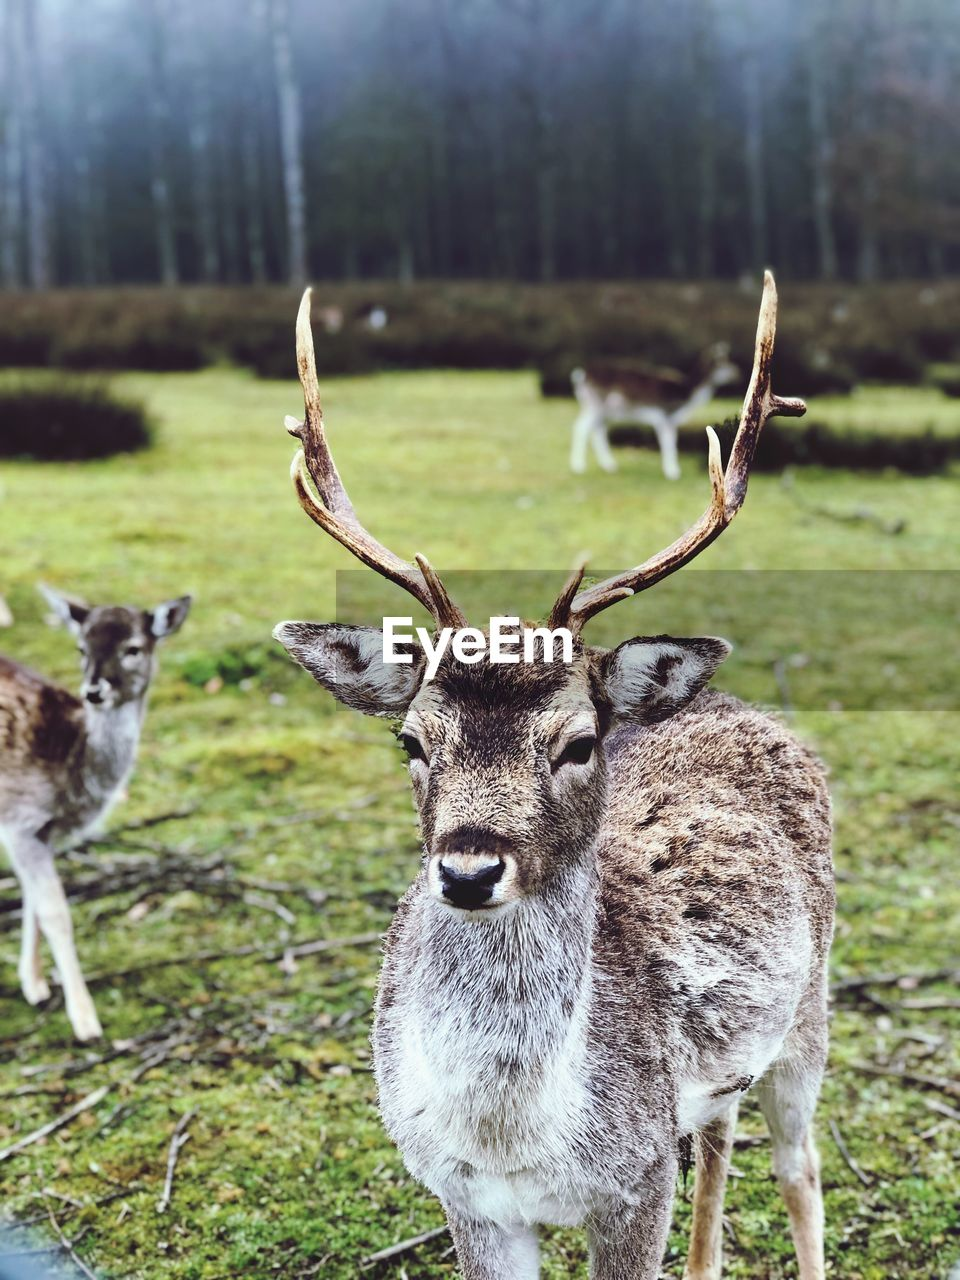 animal, animal themes, mammal, land, field, animal wildlife, plant, group of animals, vertebrate, animals in the wild, grass, deer, day, focus on foreground, no people, tree, nature, portrait, looking at camera, herbivorous, outdoors, herd